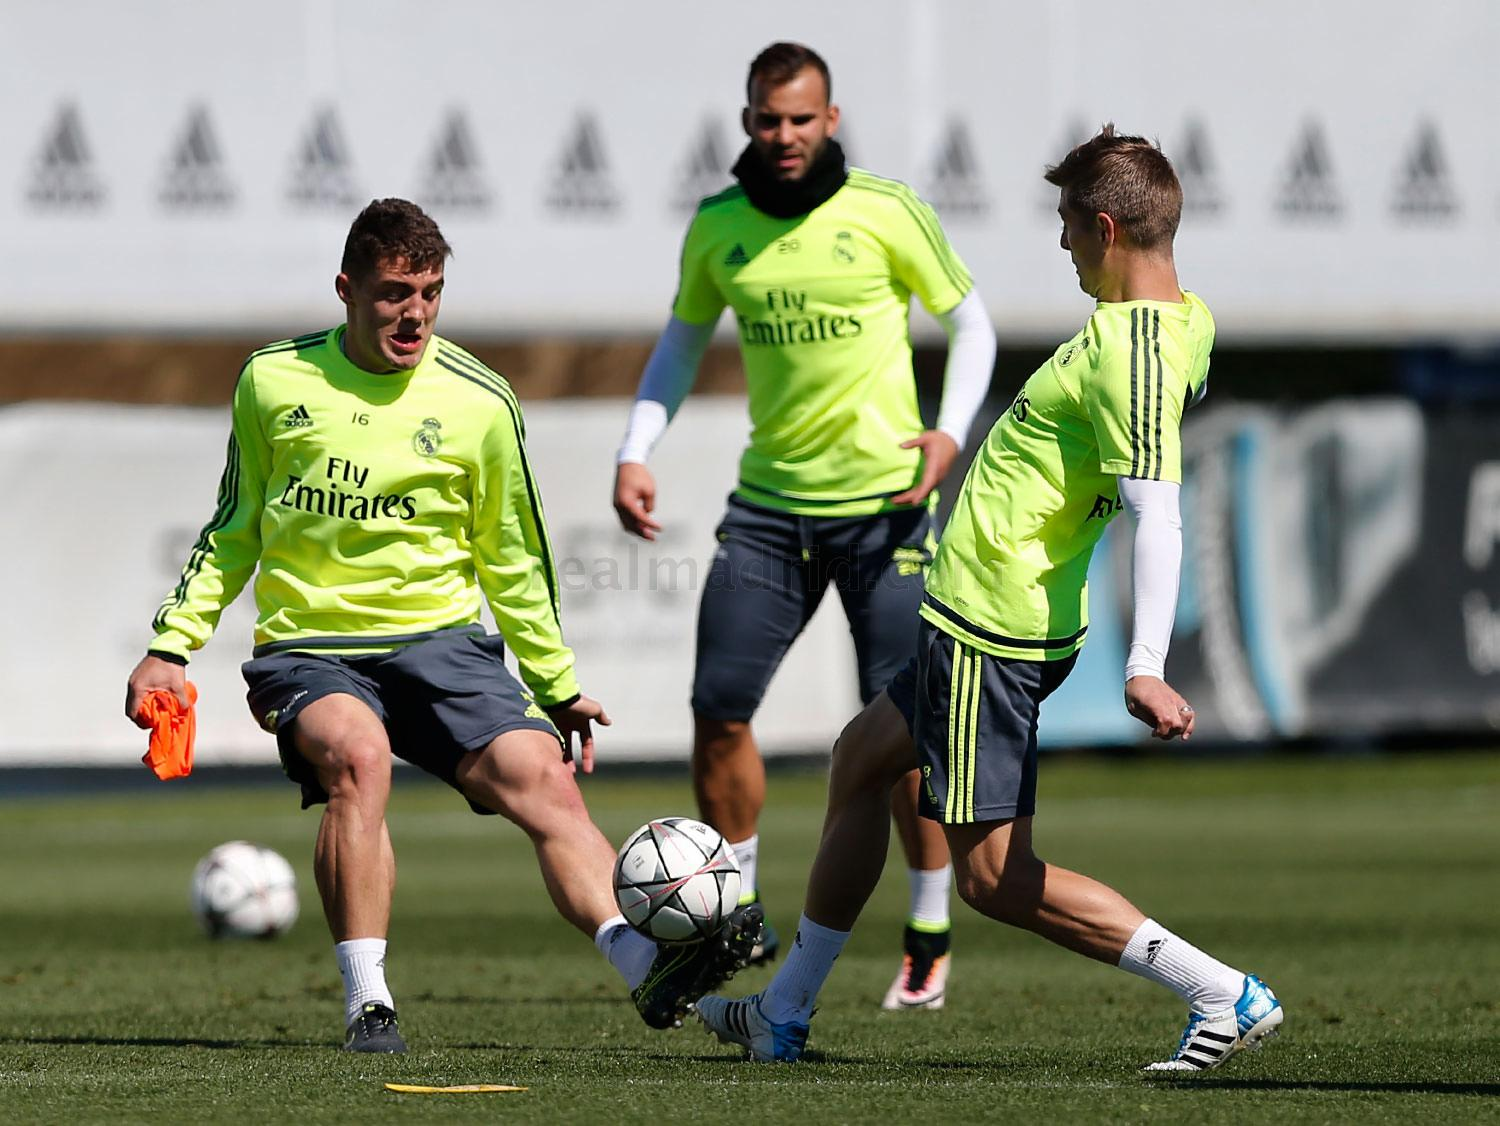 Real Madrid - Entrenamiento del Real Madrid - 01-05-2016